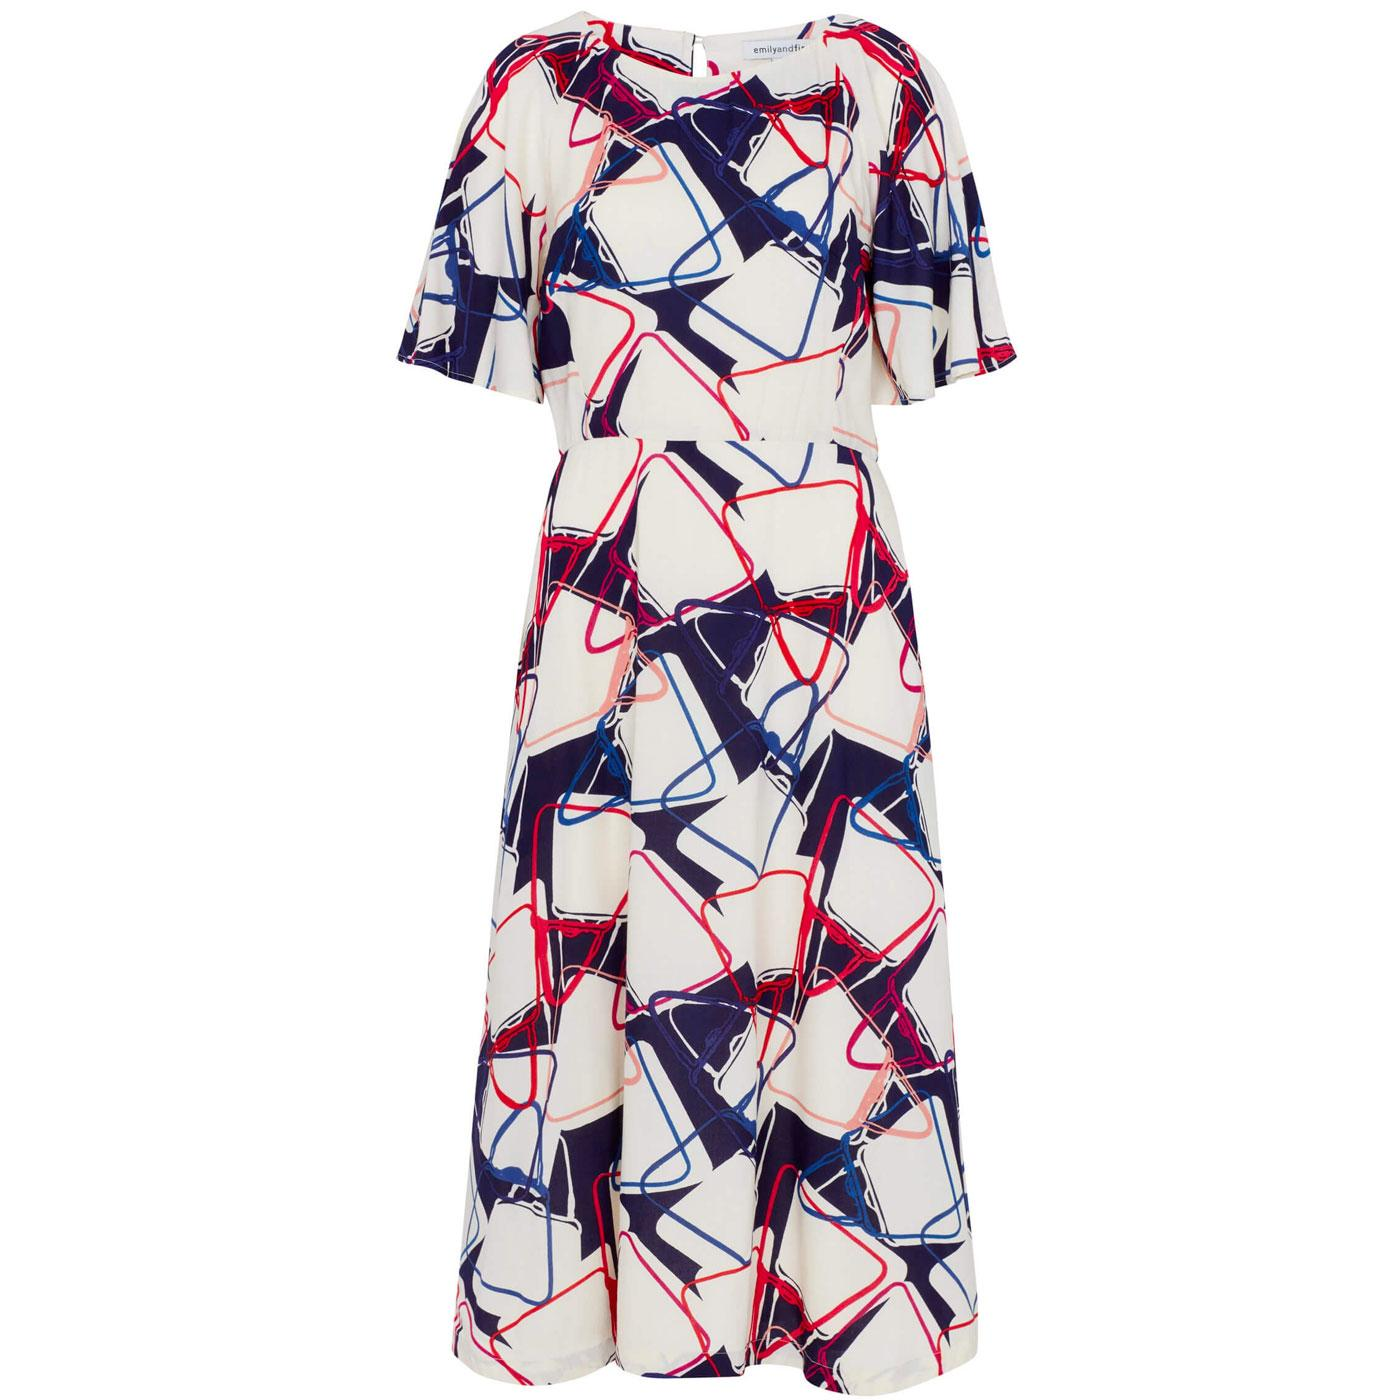 Suzanna EMILY & FIN Abstract Handbag Printed Dress